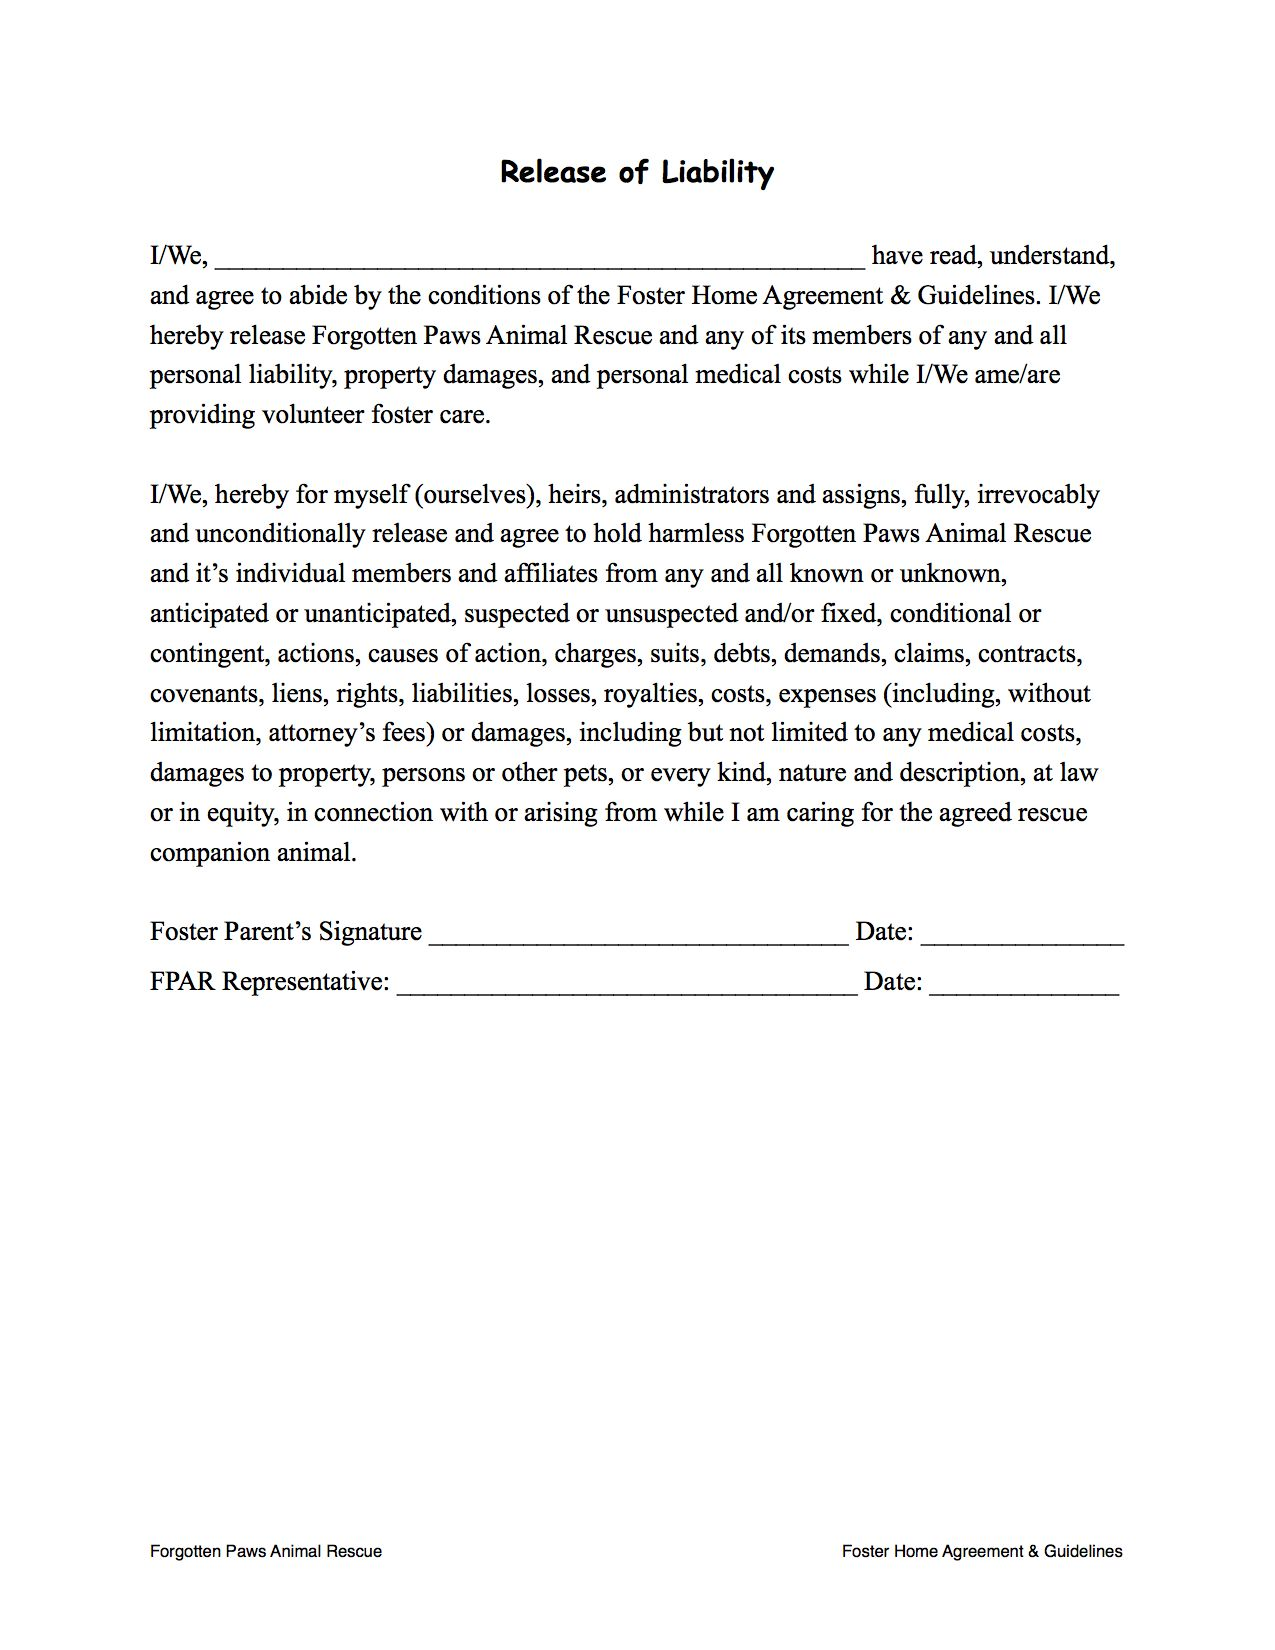 Fpar Foster Home Agreement  Guidelines  Page   Release Of